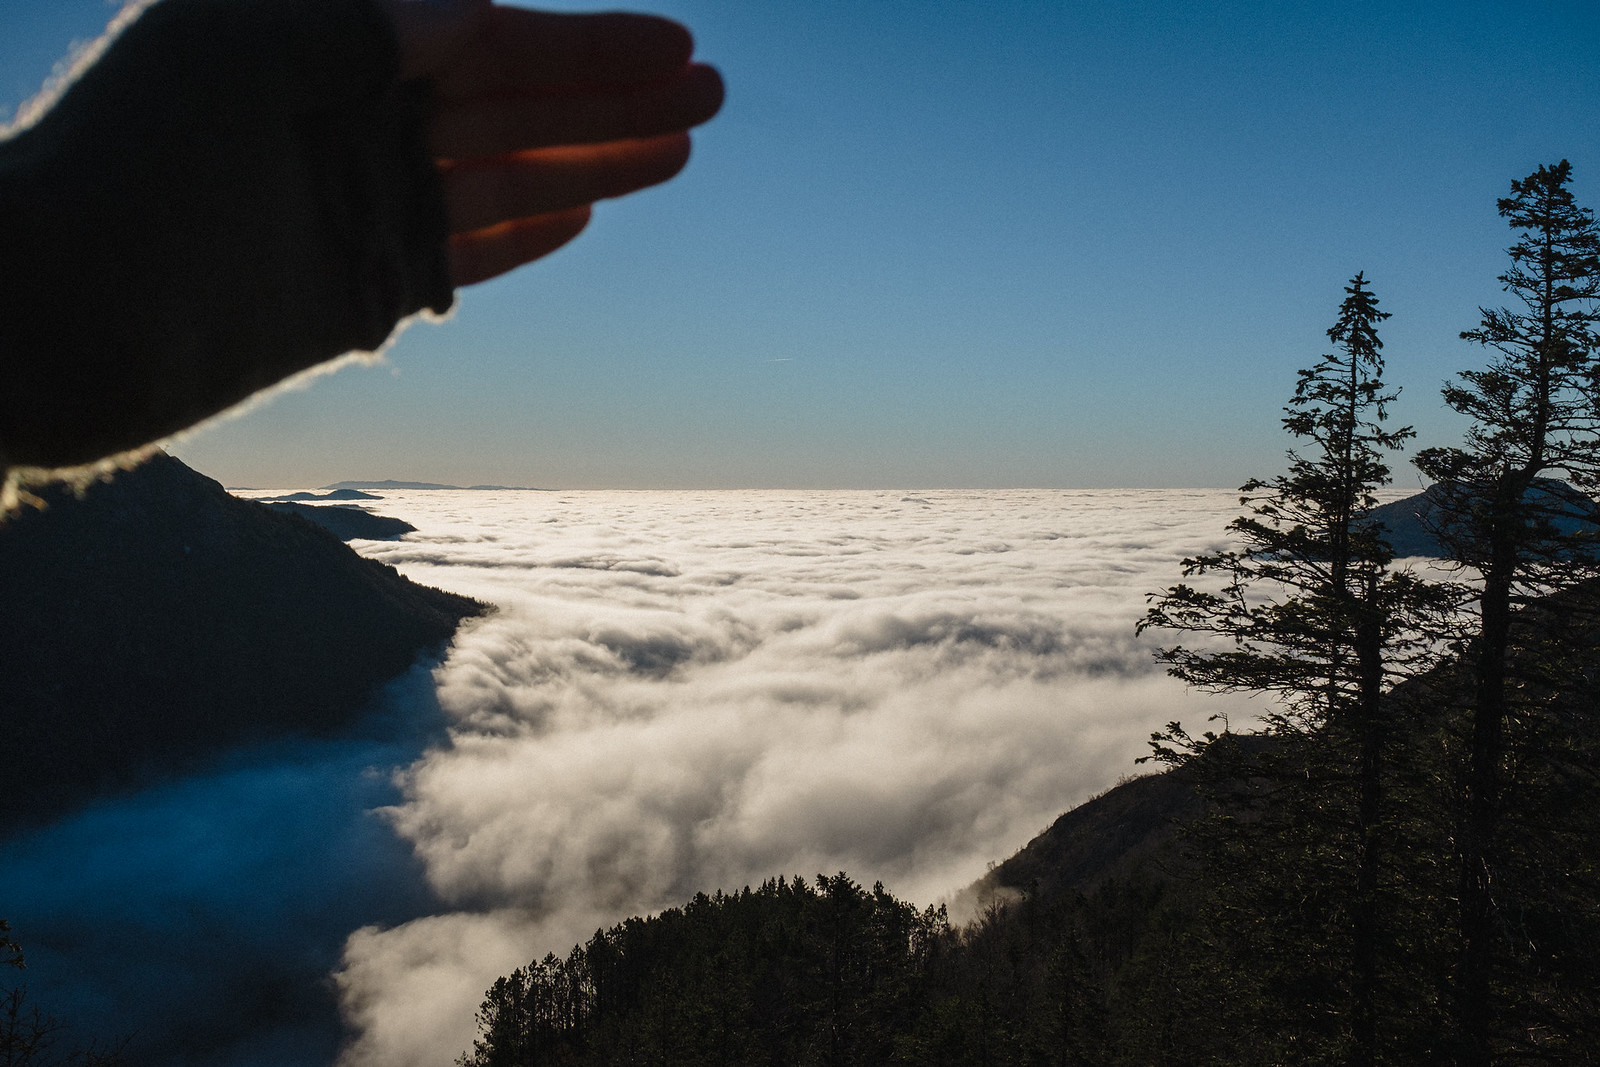 View from a mountain, fog fills the valley below. Hand shades the sun from shining directly into the camera.